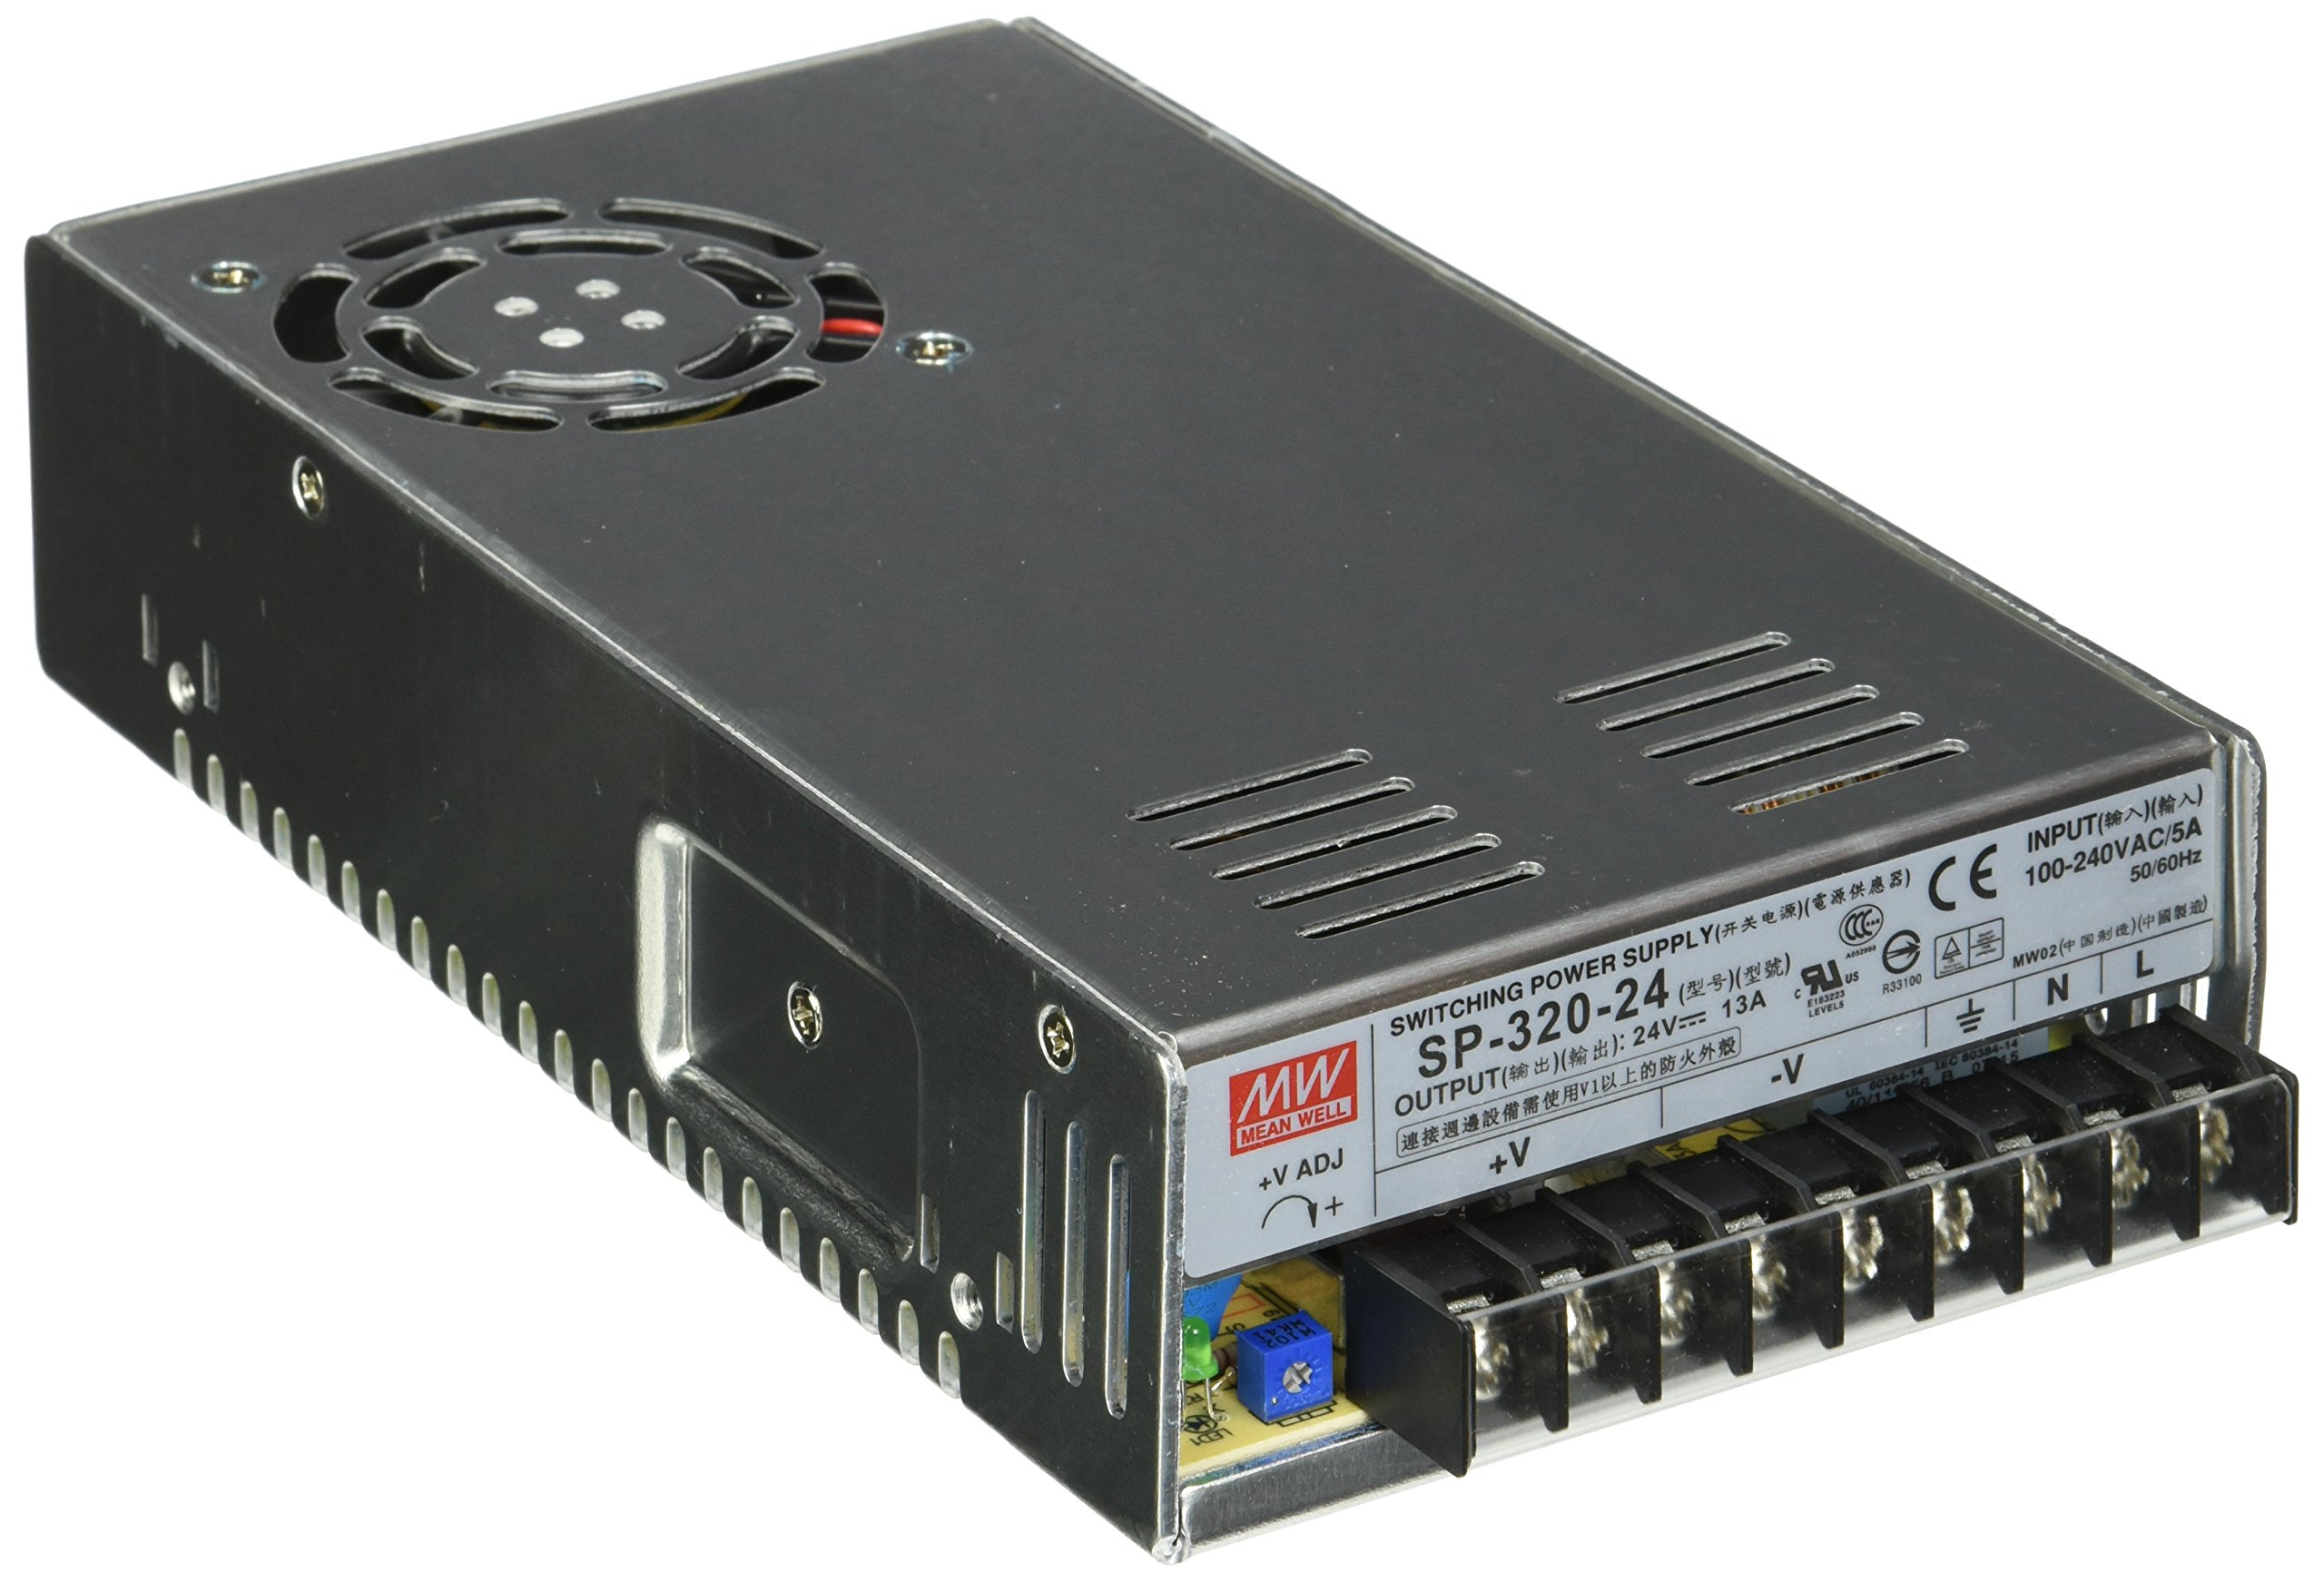 MEAN WELL SP-320-24 AC to DC Power Supply, Single Output, 24V, 13 Amp, 312W, 1.5''